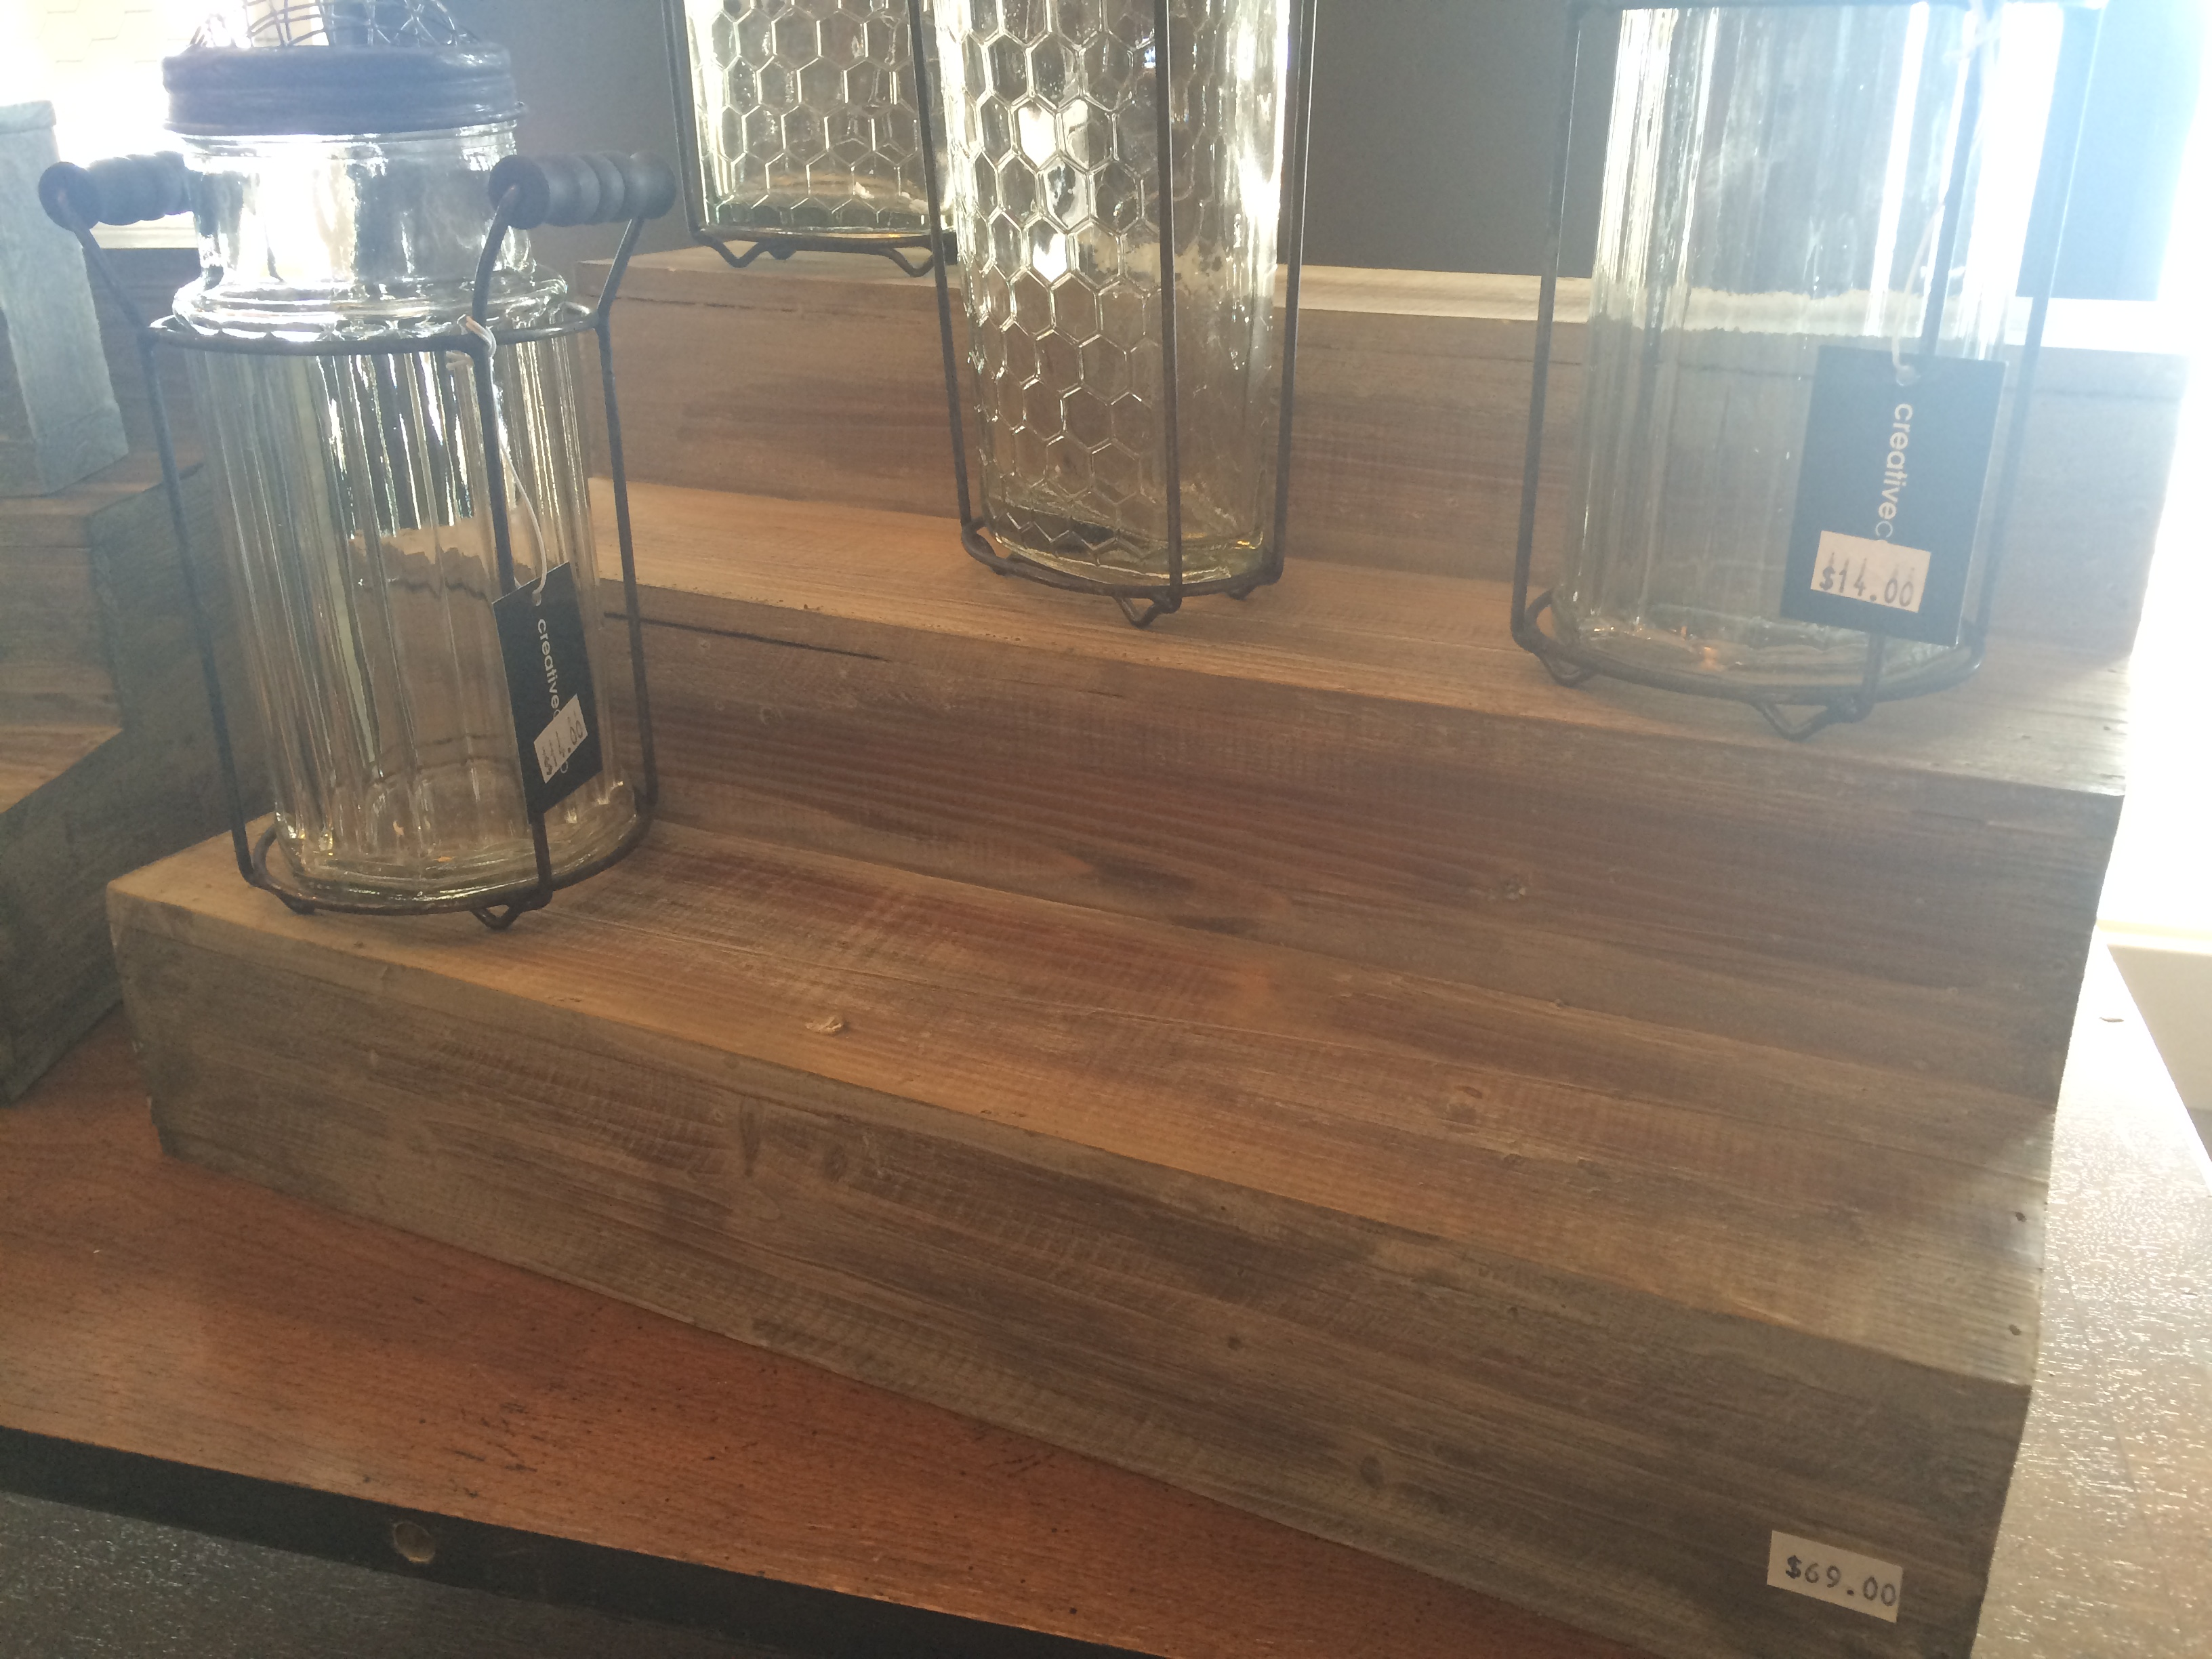 Wooden Step Display, $48